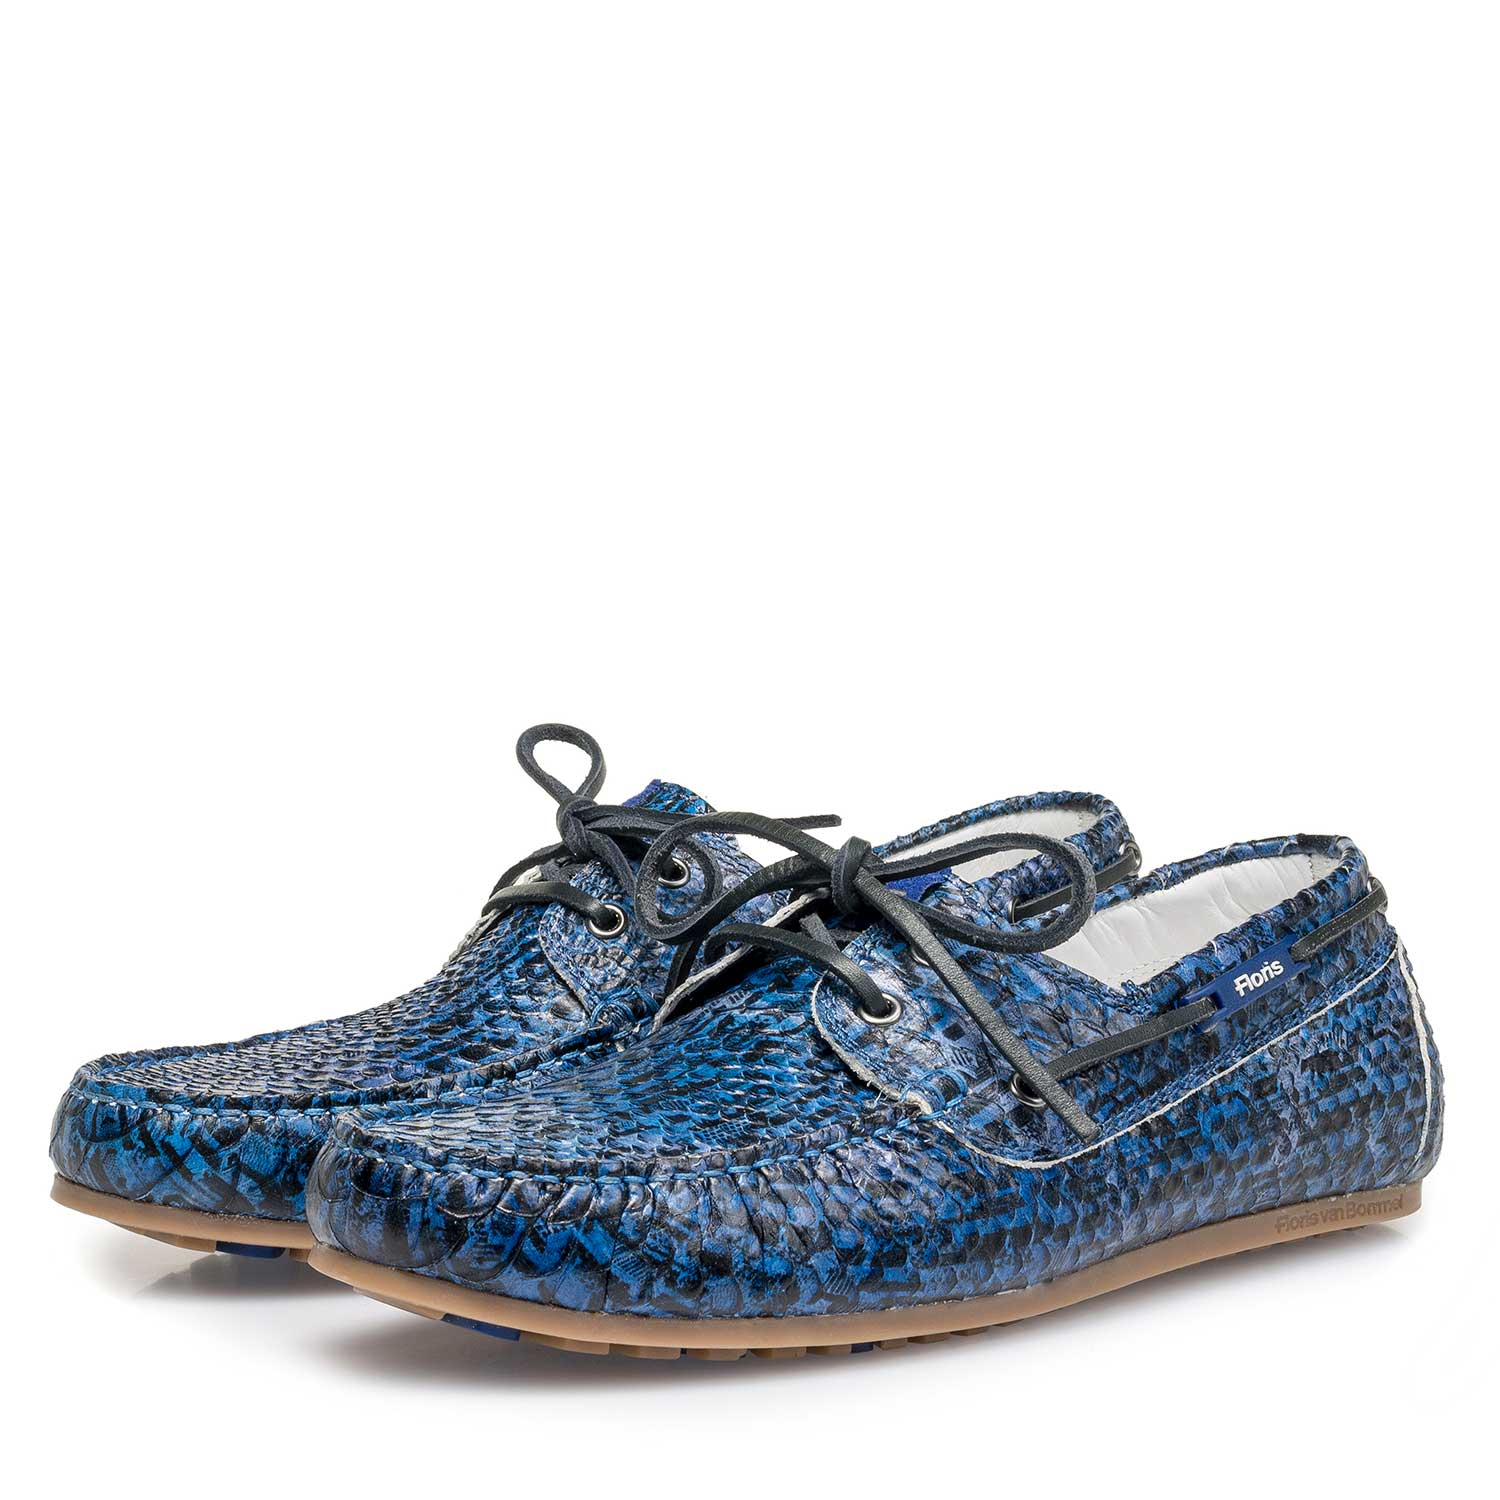 15034/00 - Blue snake print calf leather sailing shoe